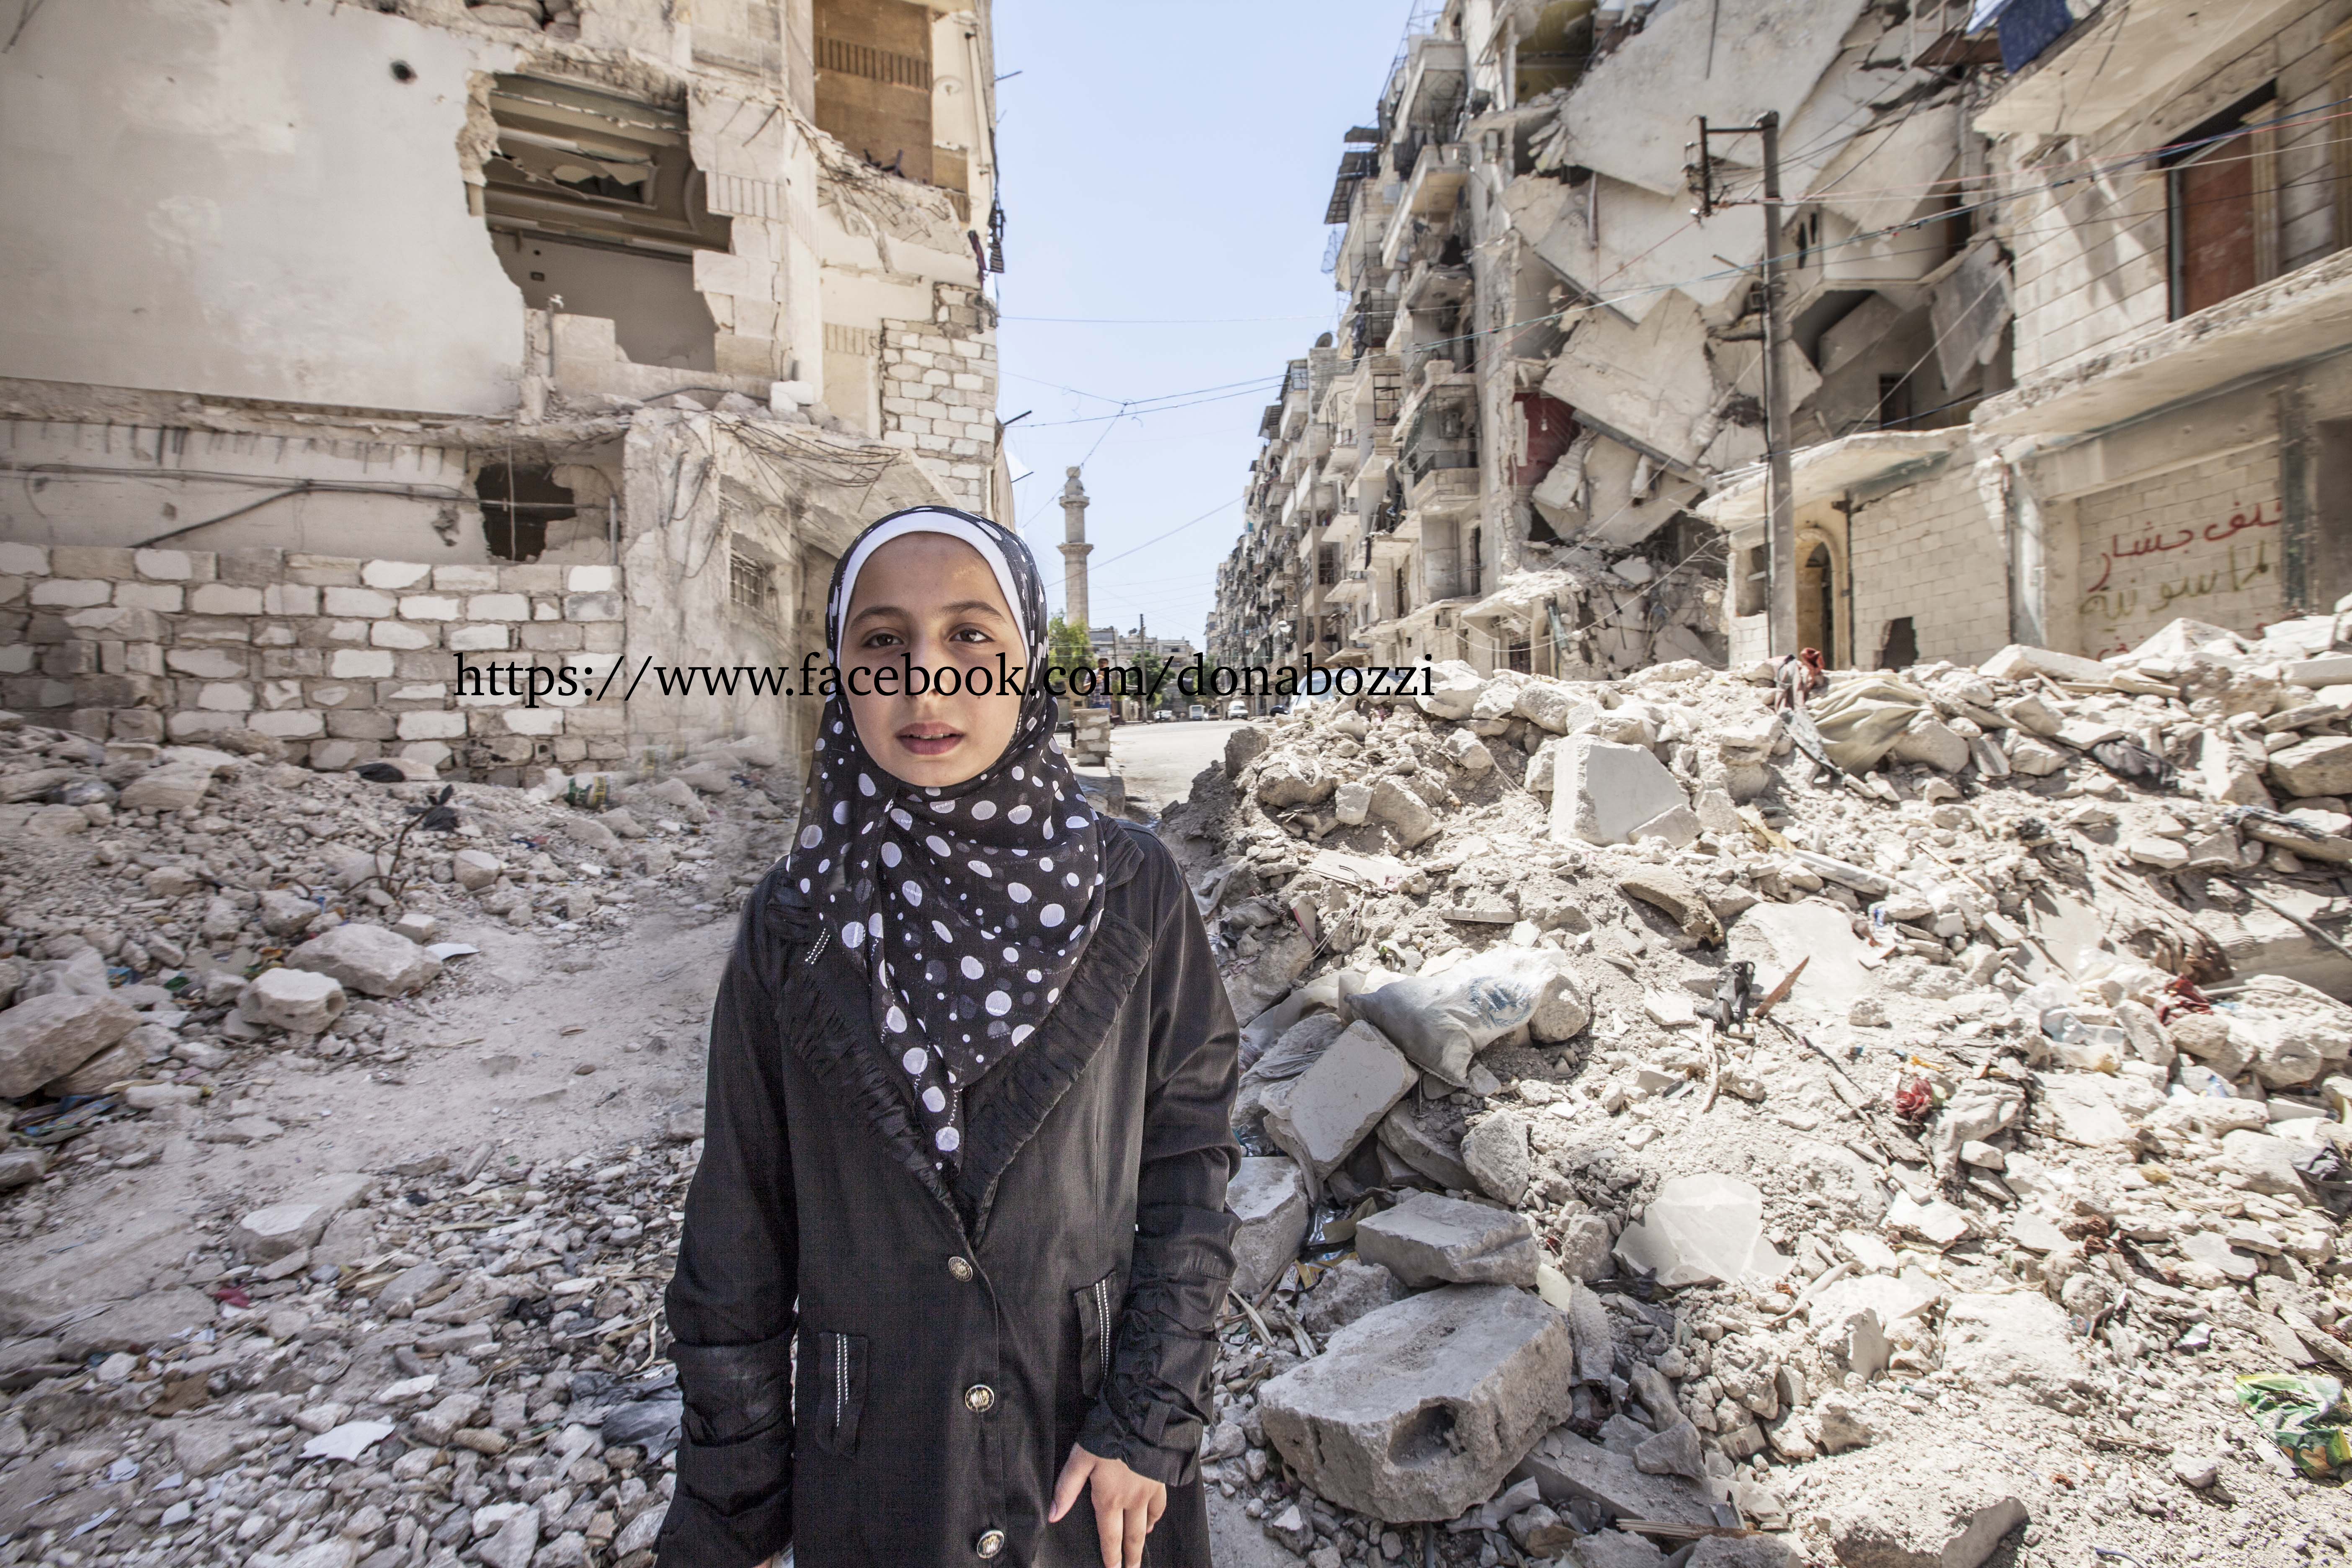 aleppo girl copy 2.jpg